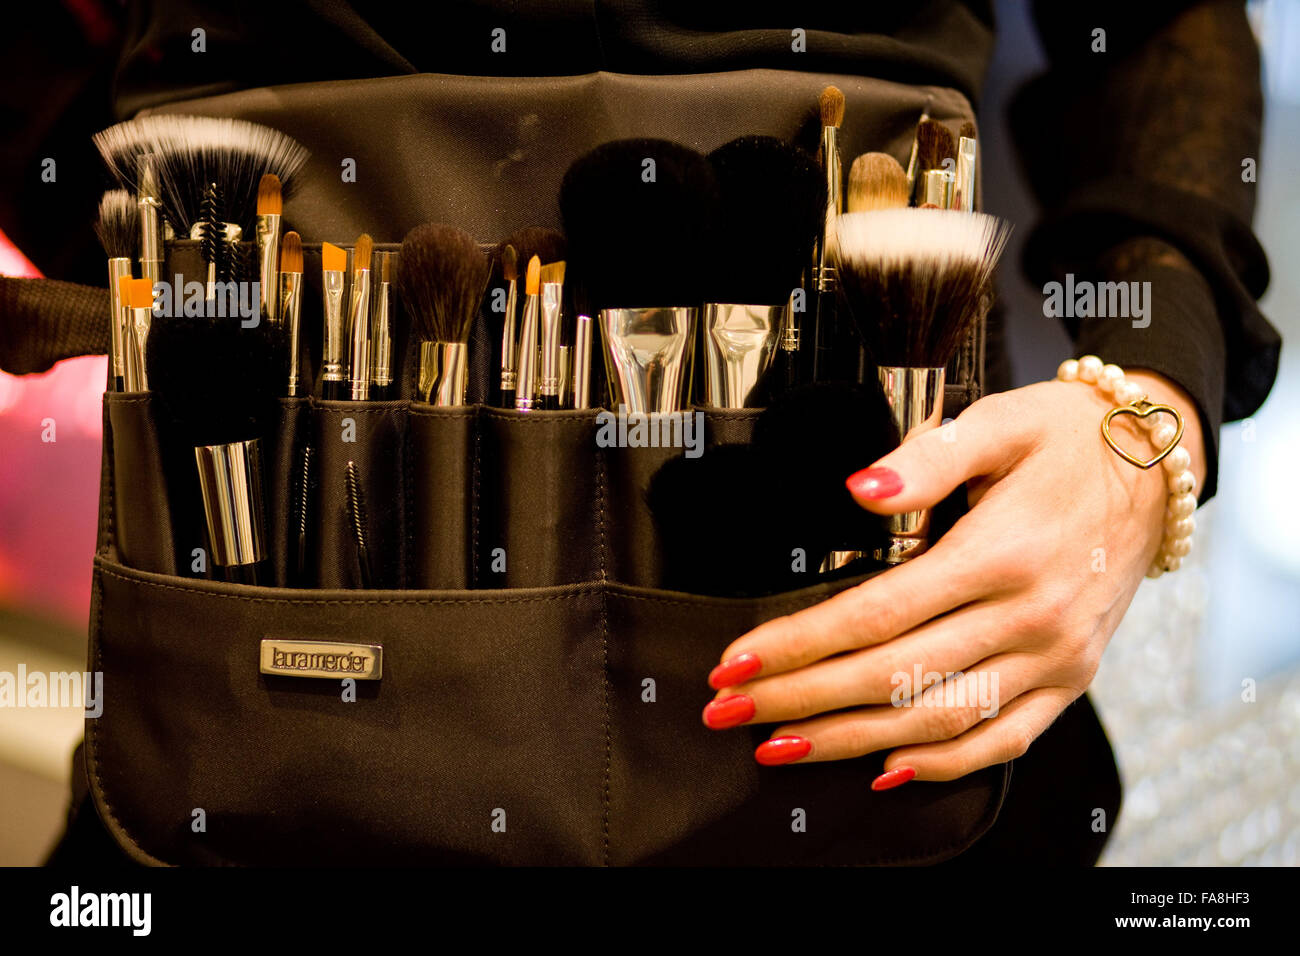 makeup brushes in a belt - Stock Image